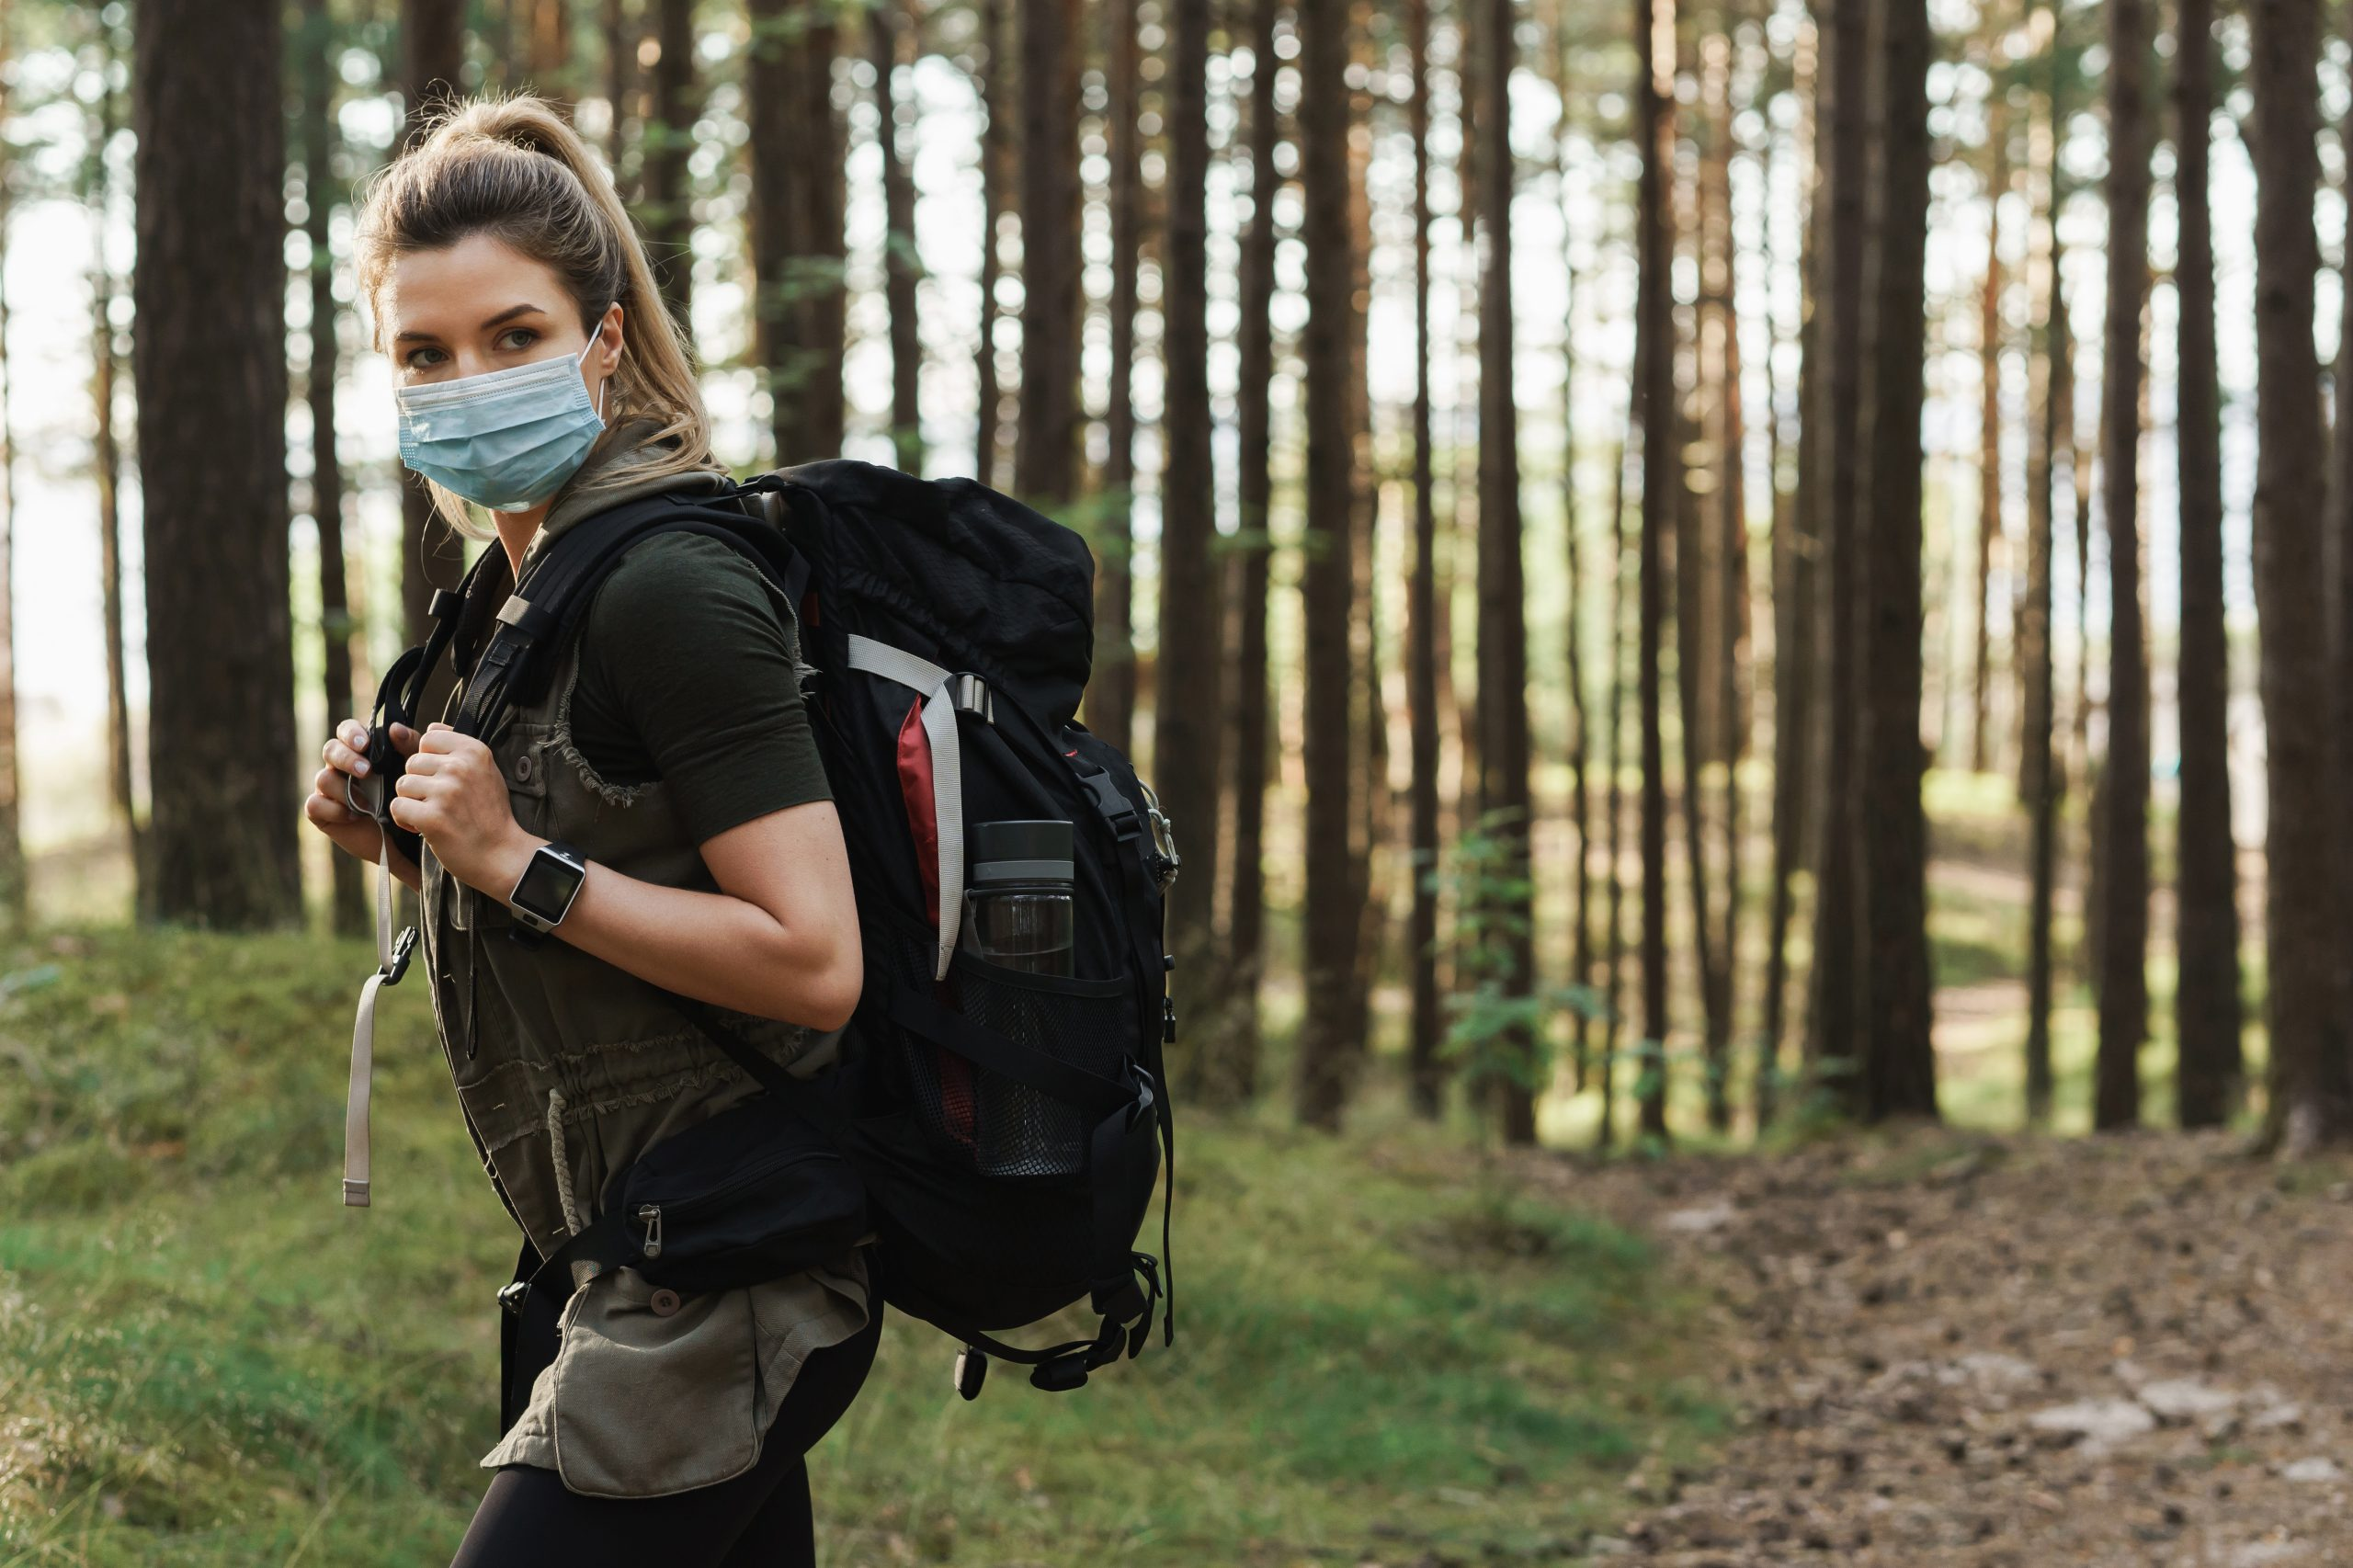 Hiking Safely During Pandemic